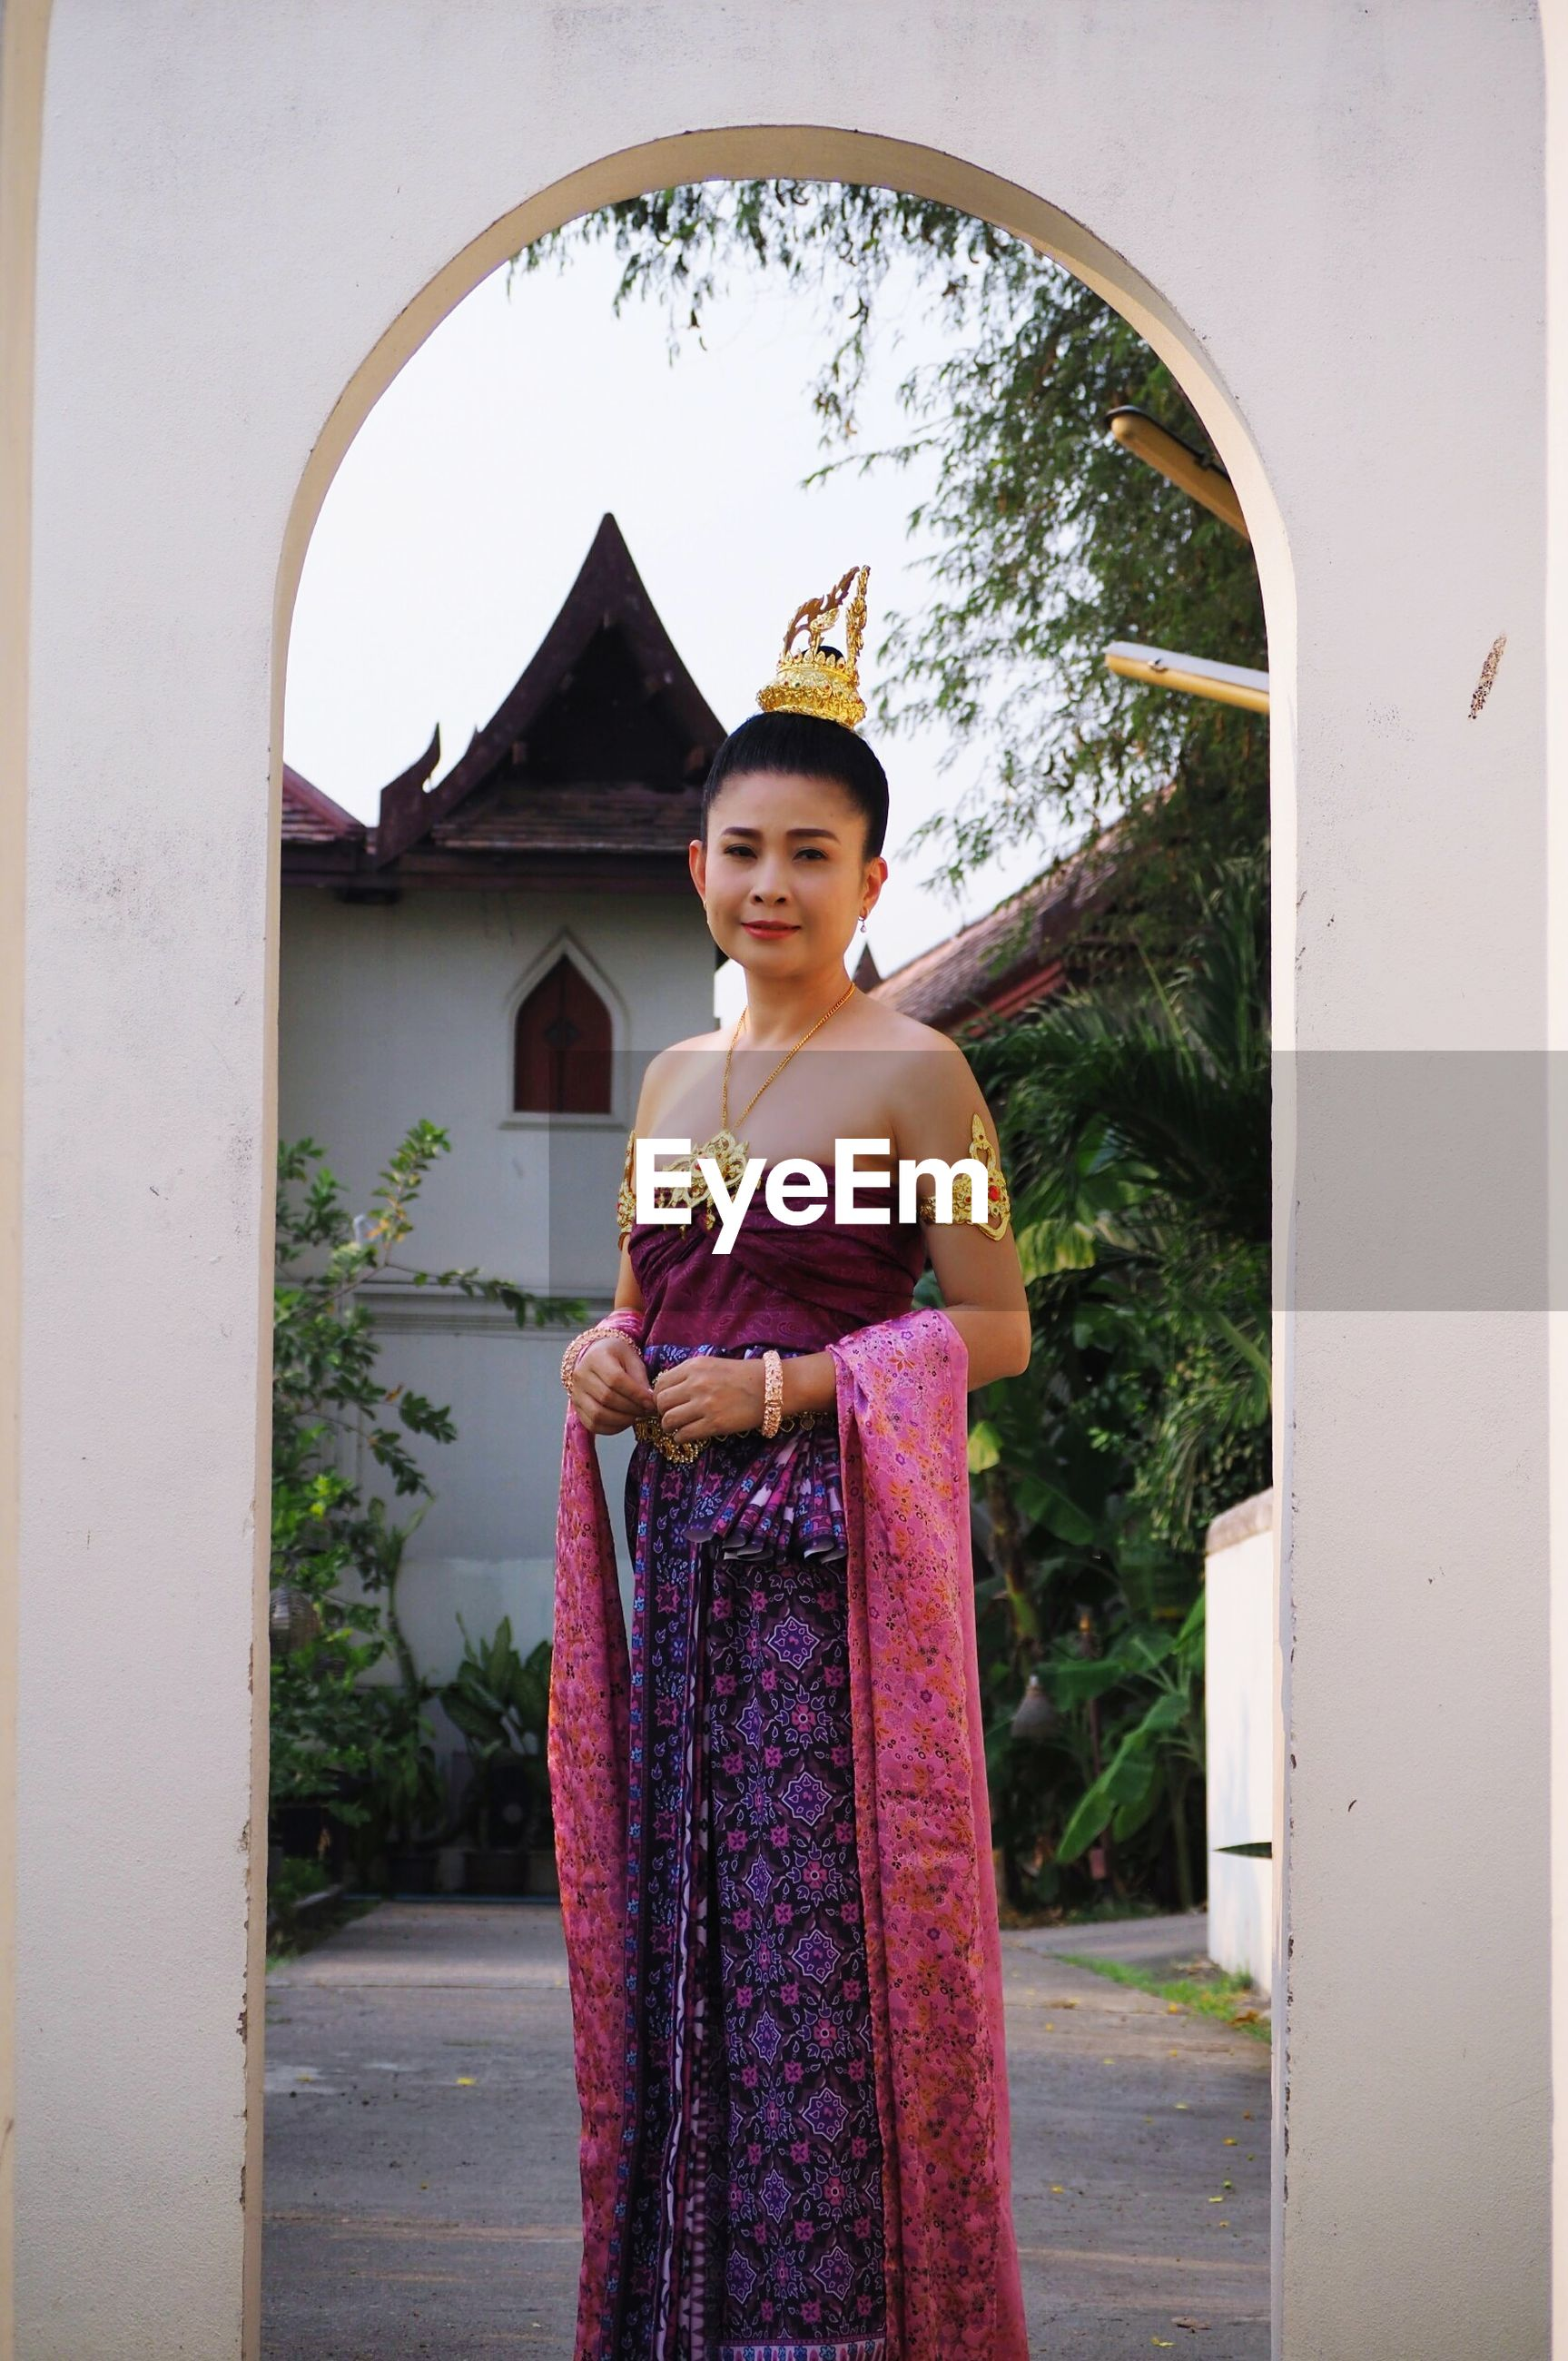 Woman in traditional clothing standing at entrance